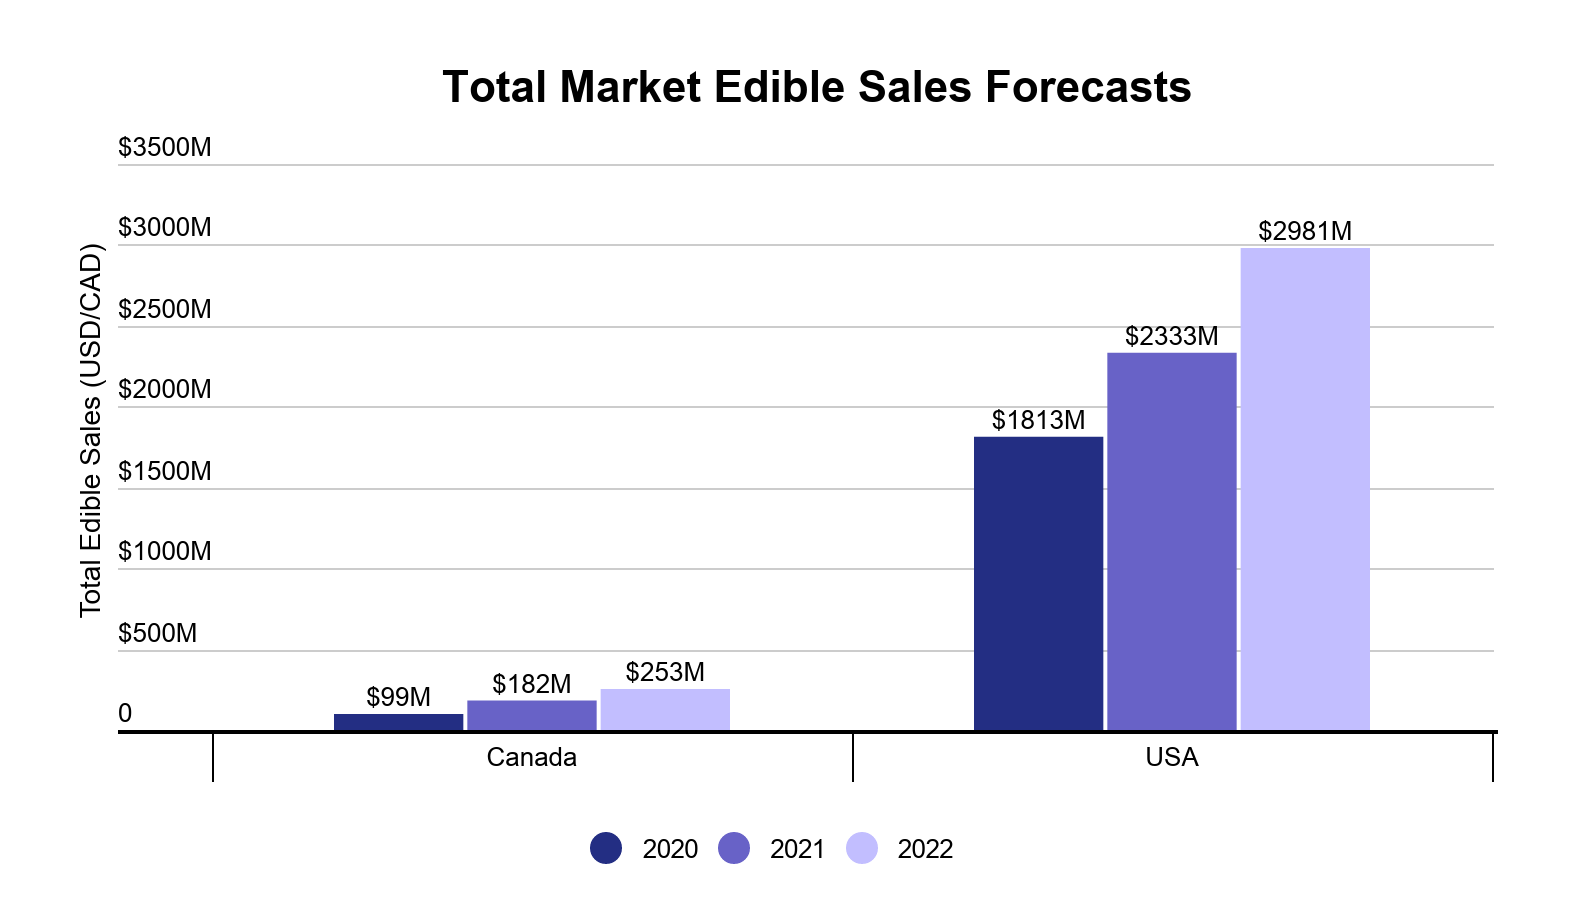 Cannabis edibles data & performance image 1: Future sales of cannabis edibles in the US and Canada